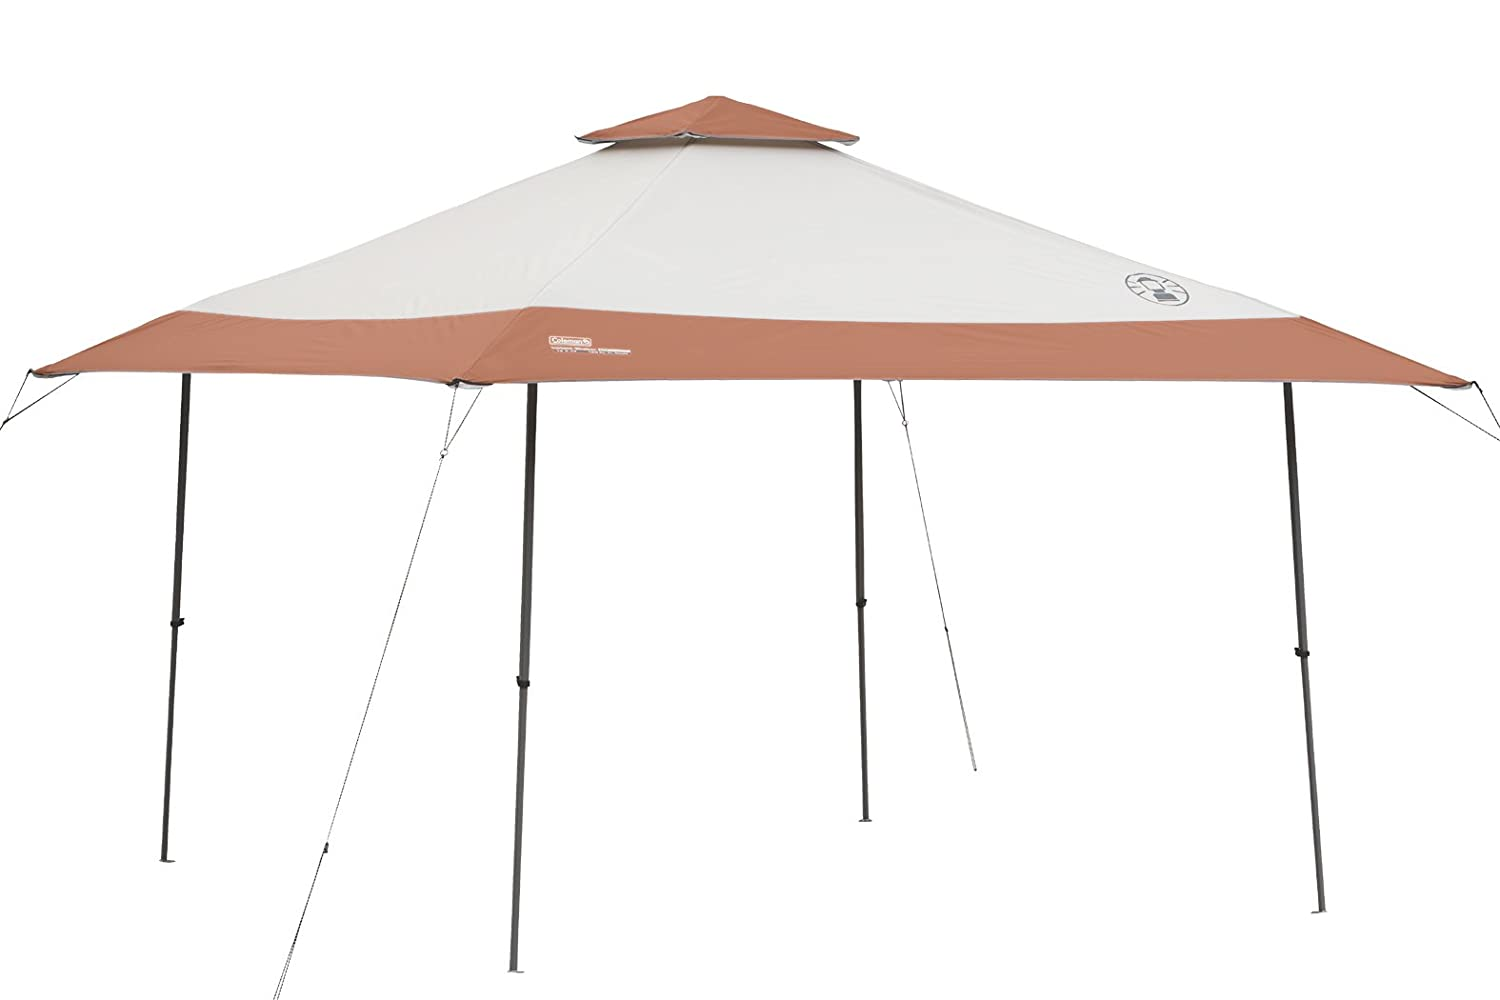 Amazon.com  Coleman 2000004407 Instant Beach Canopy 13 x 13 Feet  Sun Shelters  Sports u0026 Outdoors  sc 1 st  Amazon.com & Amazon.com : Coleman 2000004407 Instant Beach Canopy 13 x 13 Feet ...